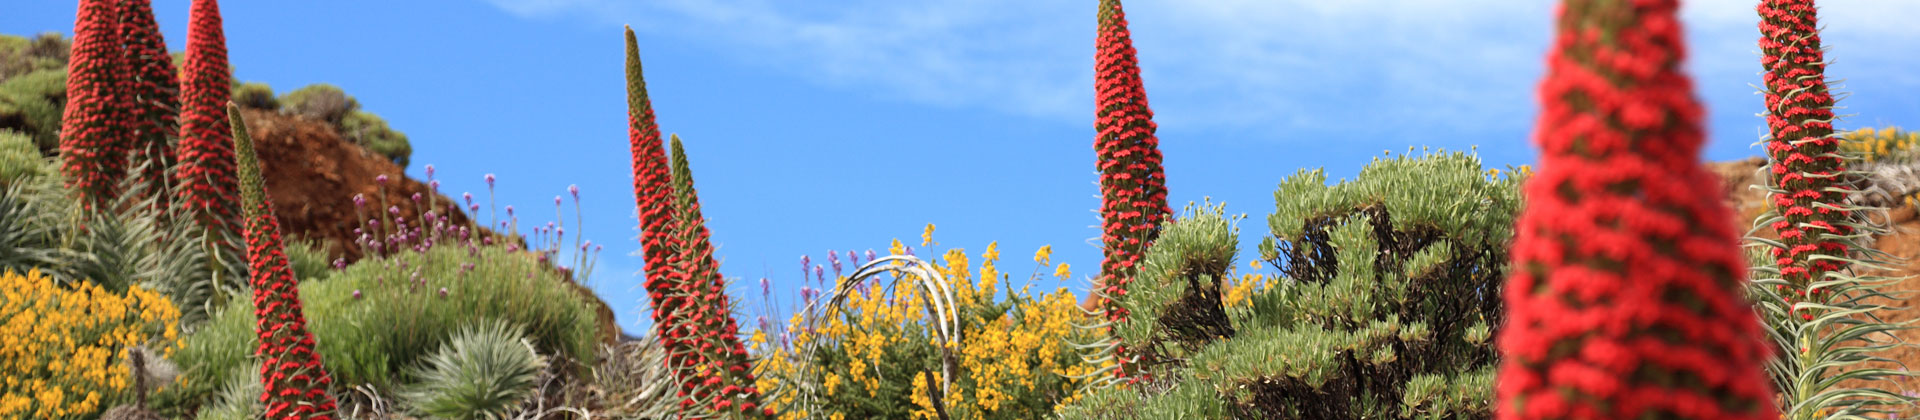 https://www.goodmorningtenerife.com/wp-content/uploads/2014/08/03_slide_flowers_GM_Tenerife.jpg